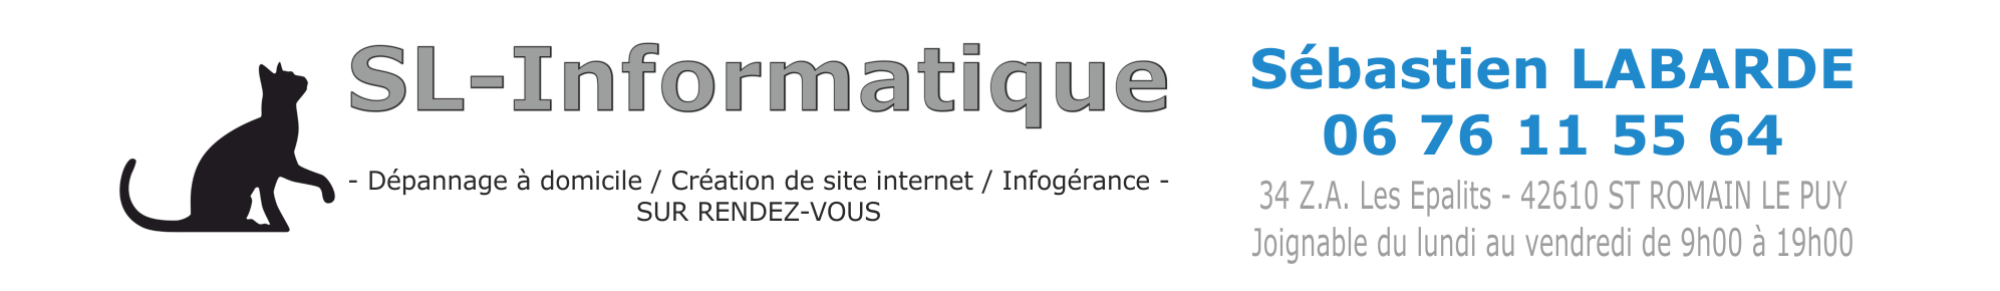 SL-Informatique